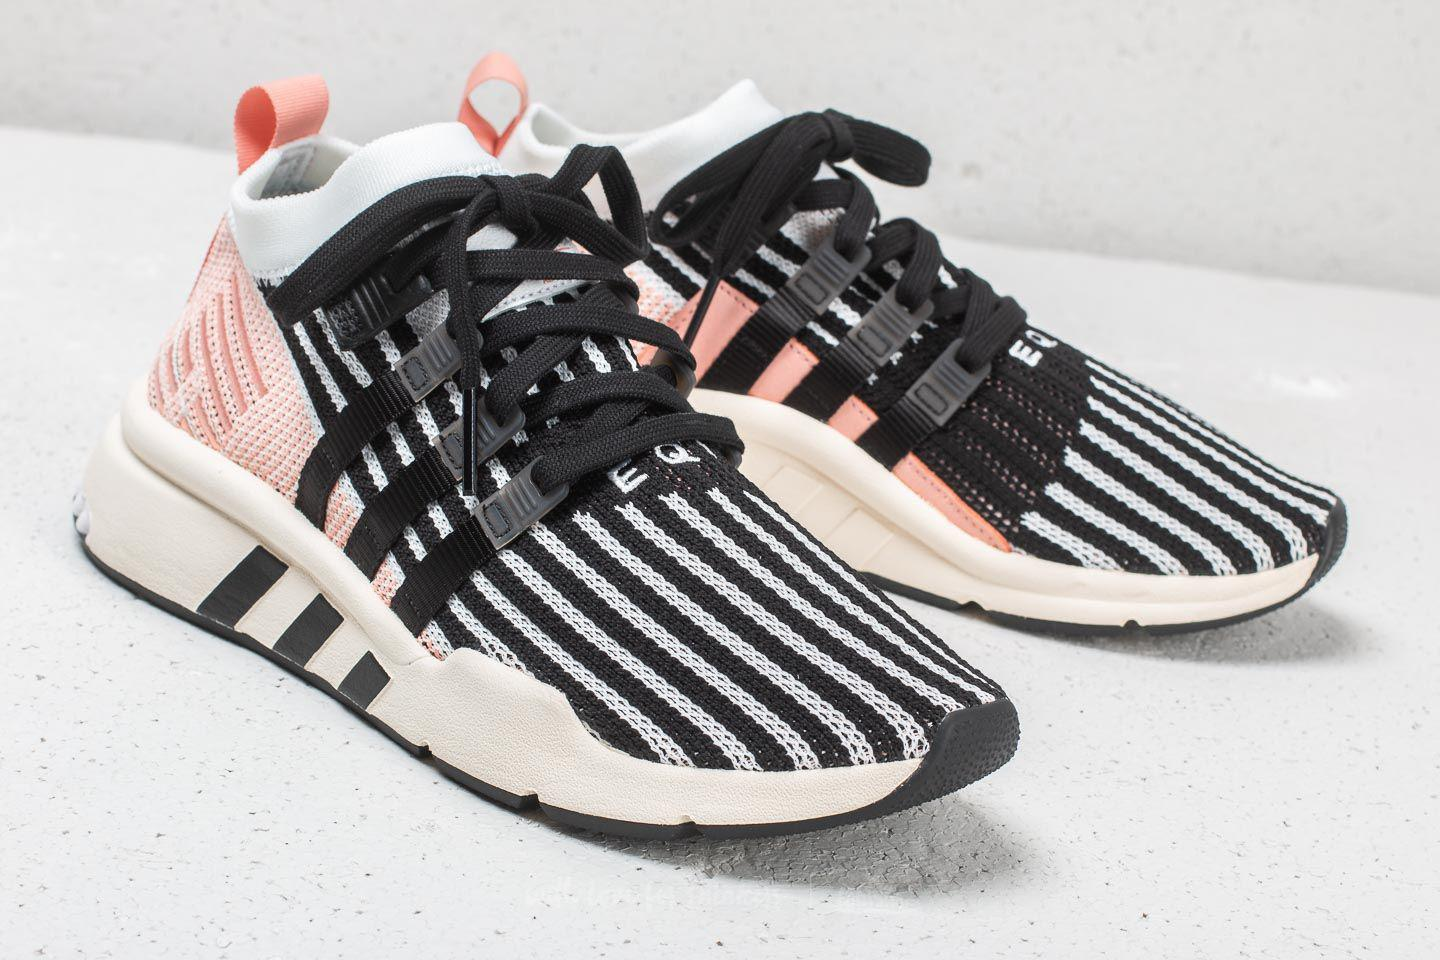 separation shoes 967e5 757ff Adidas - Adidas Eqt Support Mid Adv Pk Cloud White Core Black Trace Pink.  View fullscreen